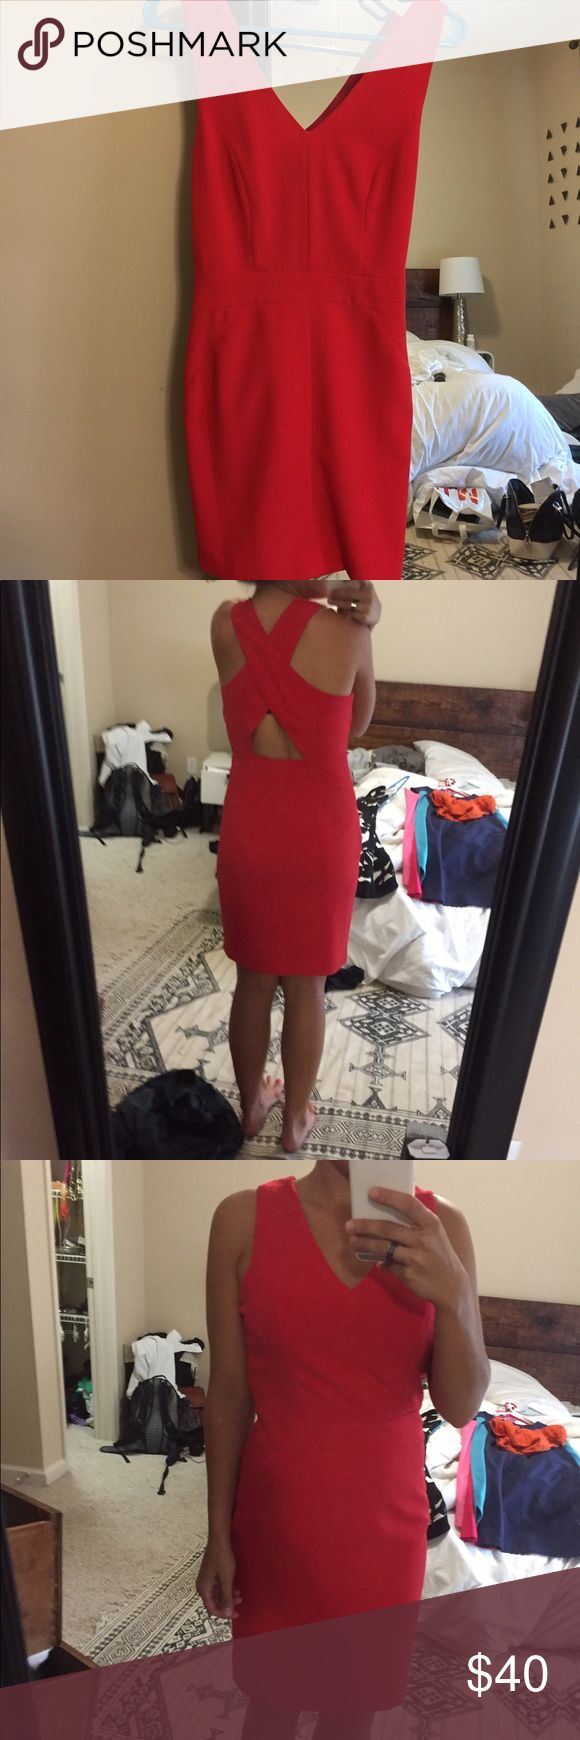 Banana Republic Bright Red Criss Criss Dress The cutest Bright Red Cross cross dress! Straps criss cross in the back and gives a little open back. Fits in body in the right places. Wore it only few times. Perfect for going out or work. Brand: Banana Republic Size: 4 Petite Banana Republic Dresses